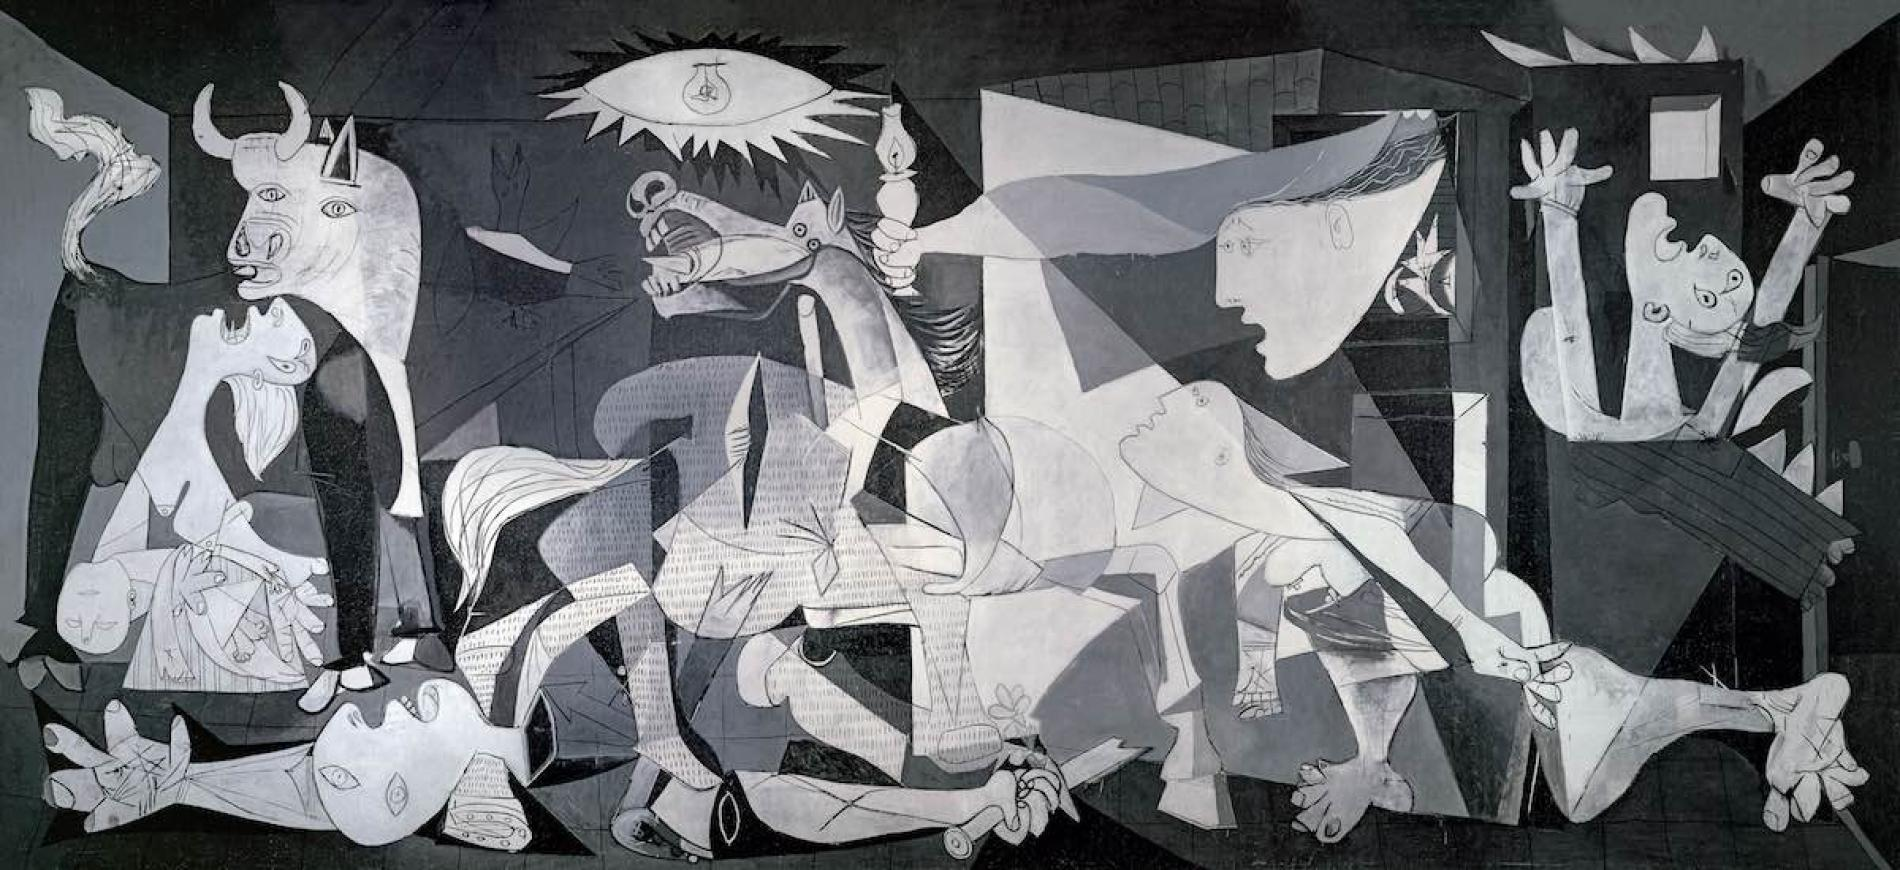 Pablo Picasso Guernica April 26, 1937–June 1937, mural-sized oil painting on canvas